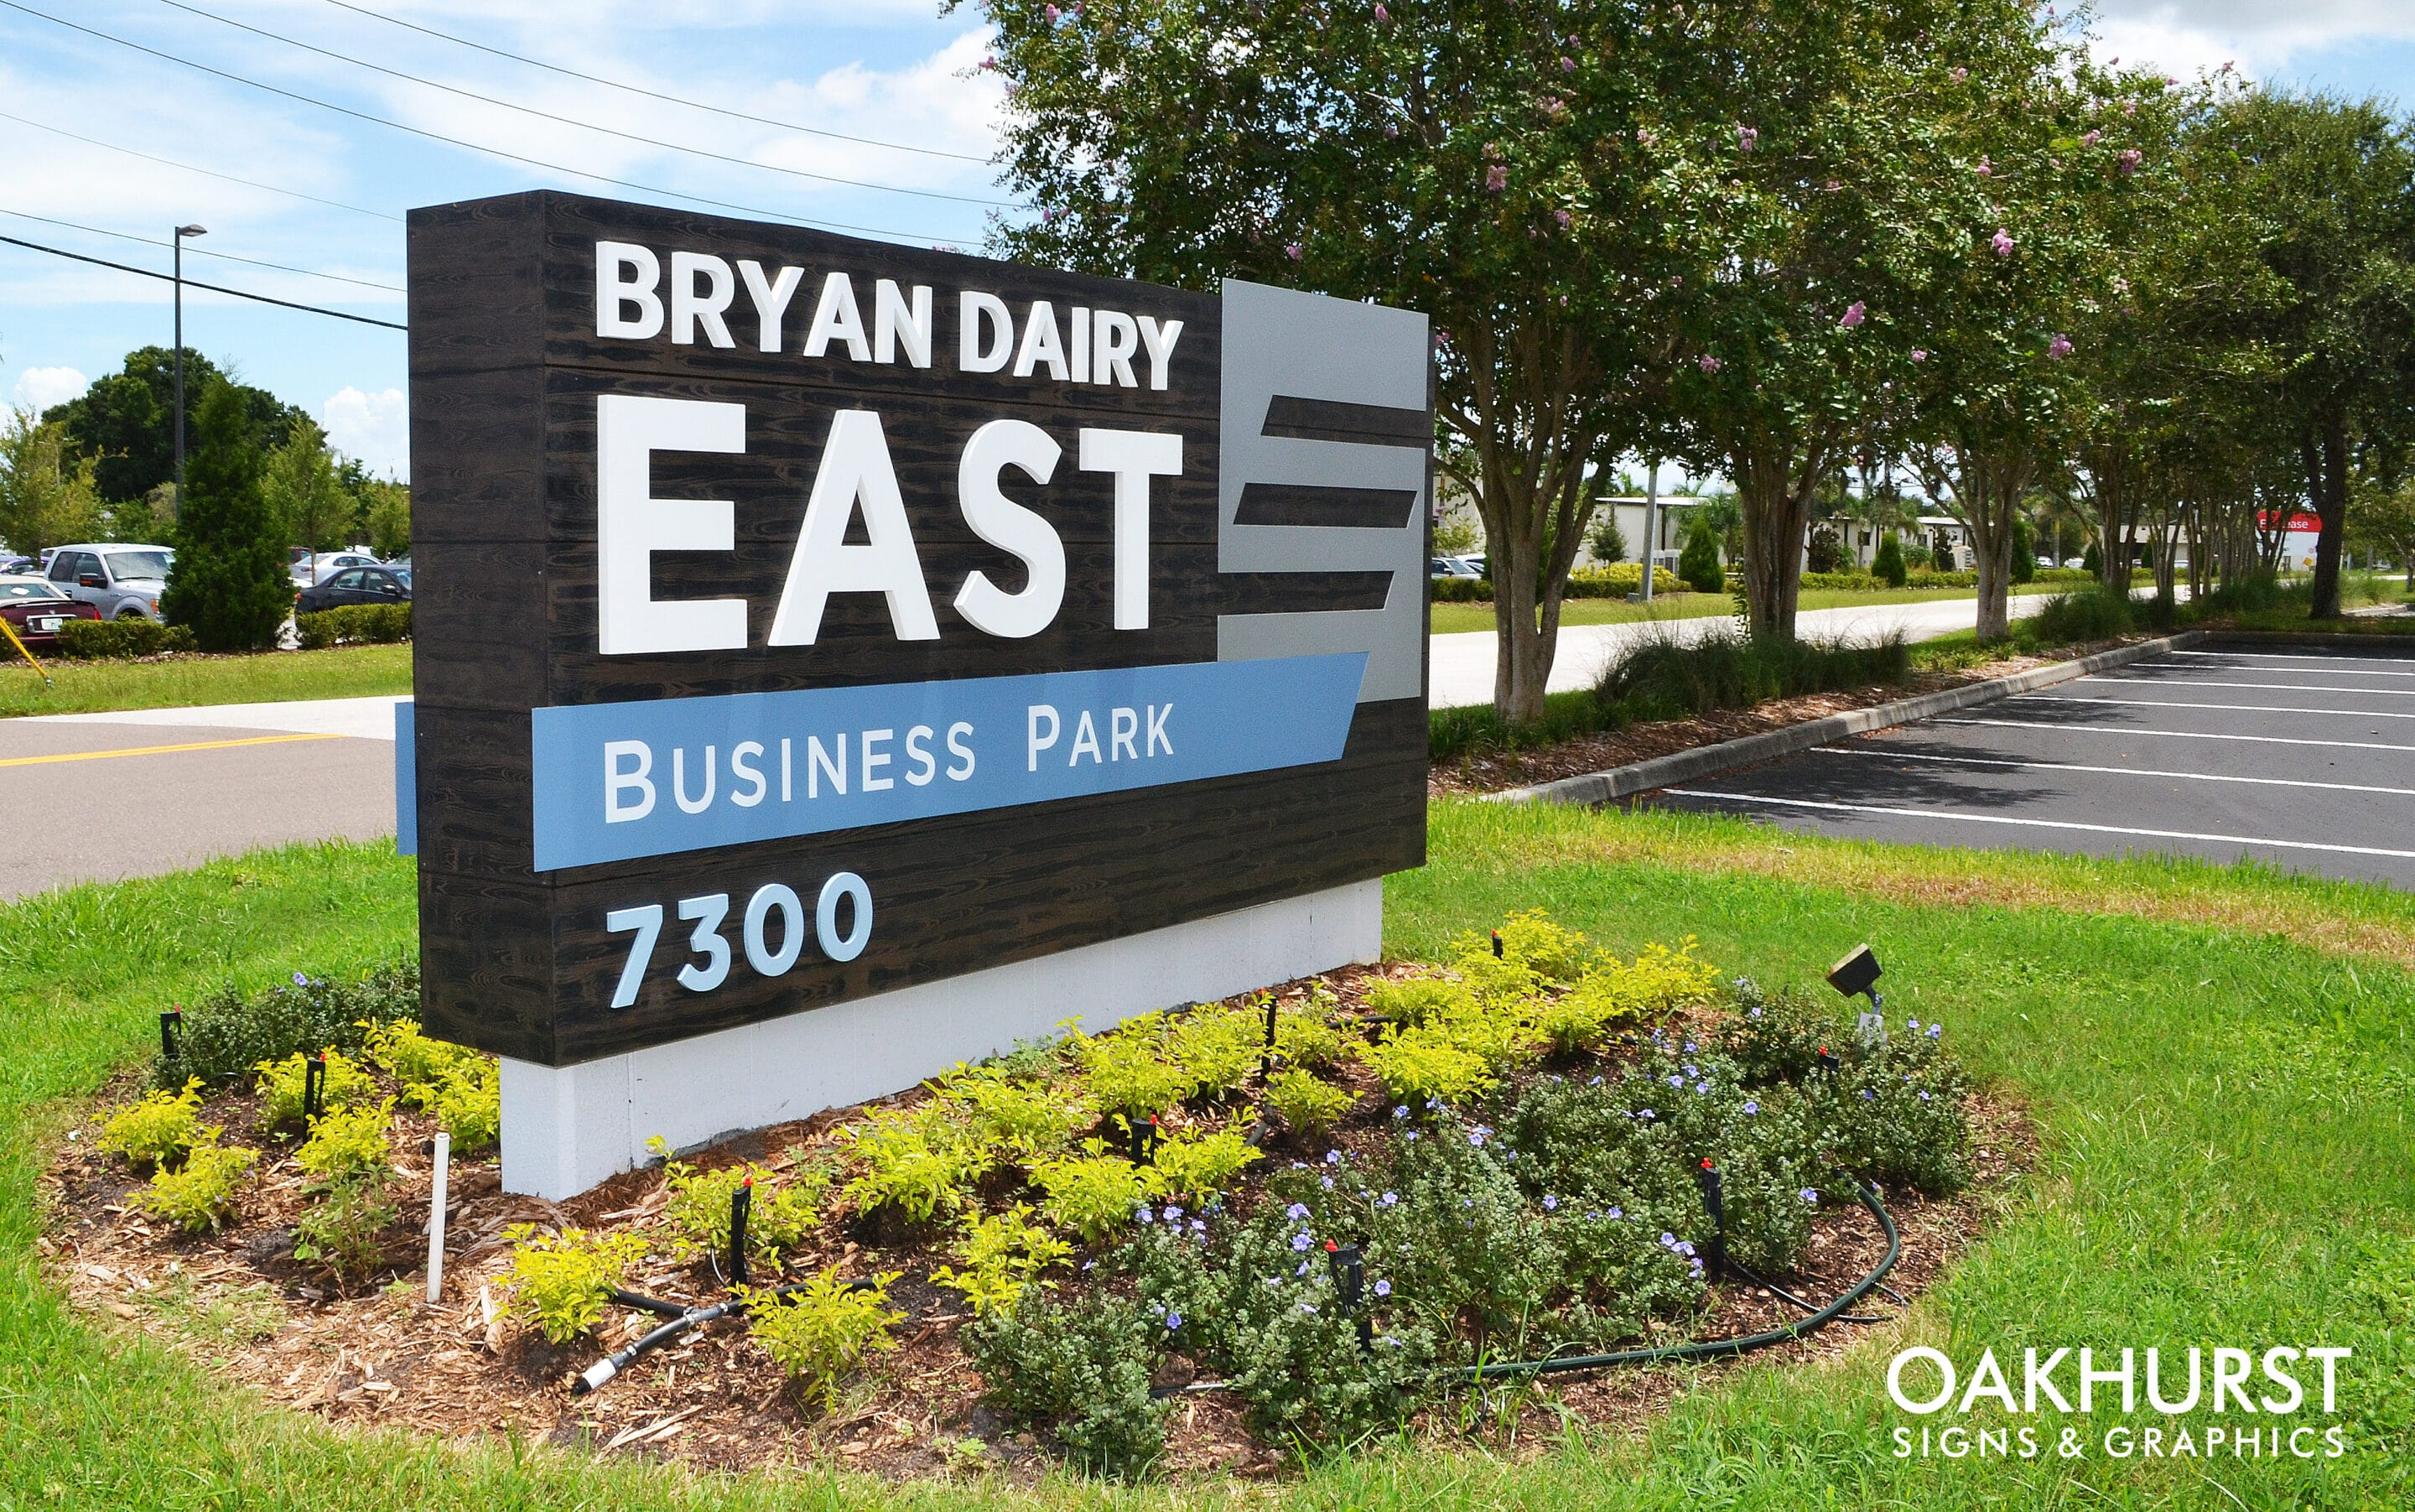 Bryan Dairy East Monument Sign seen from the front